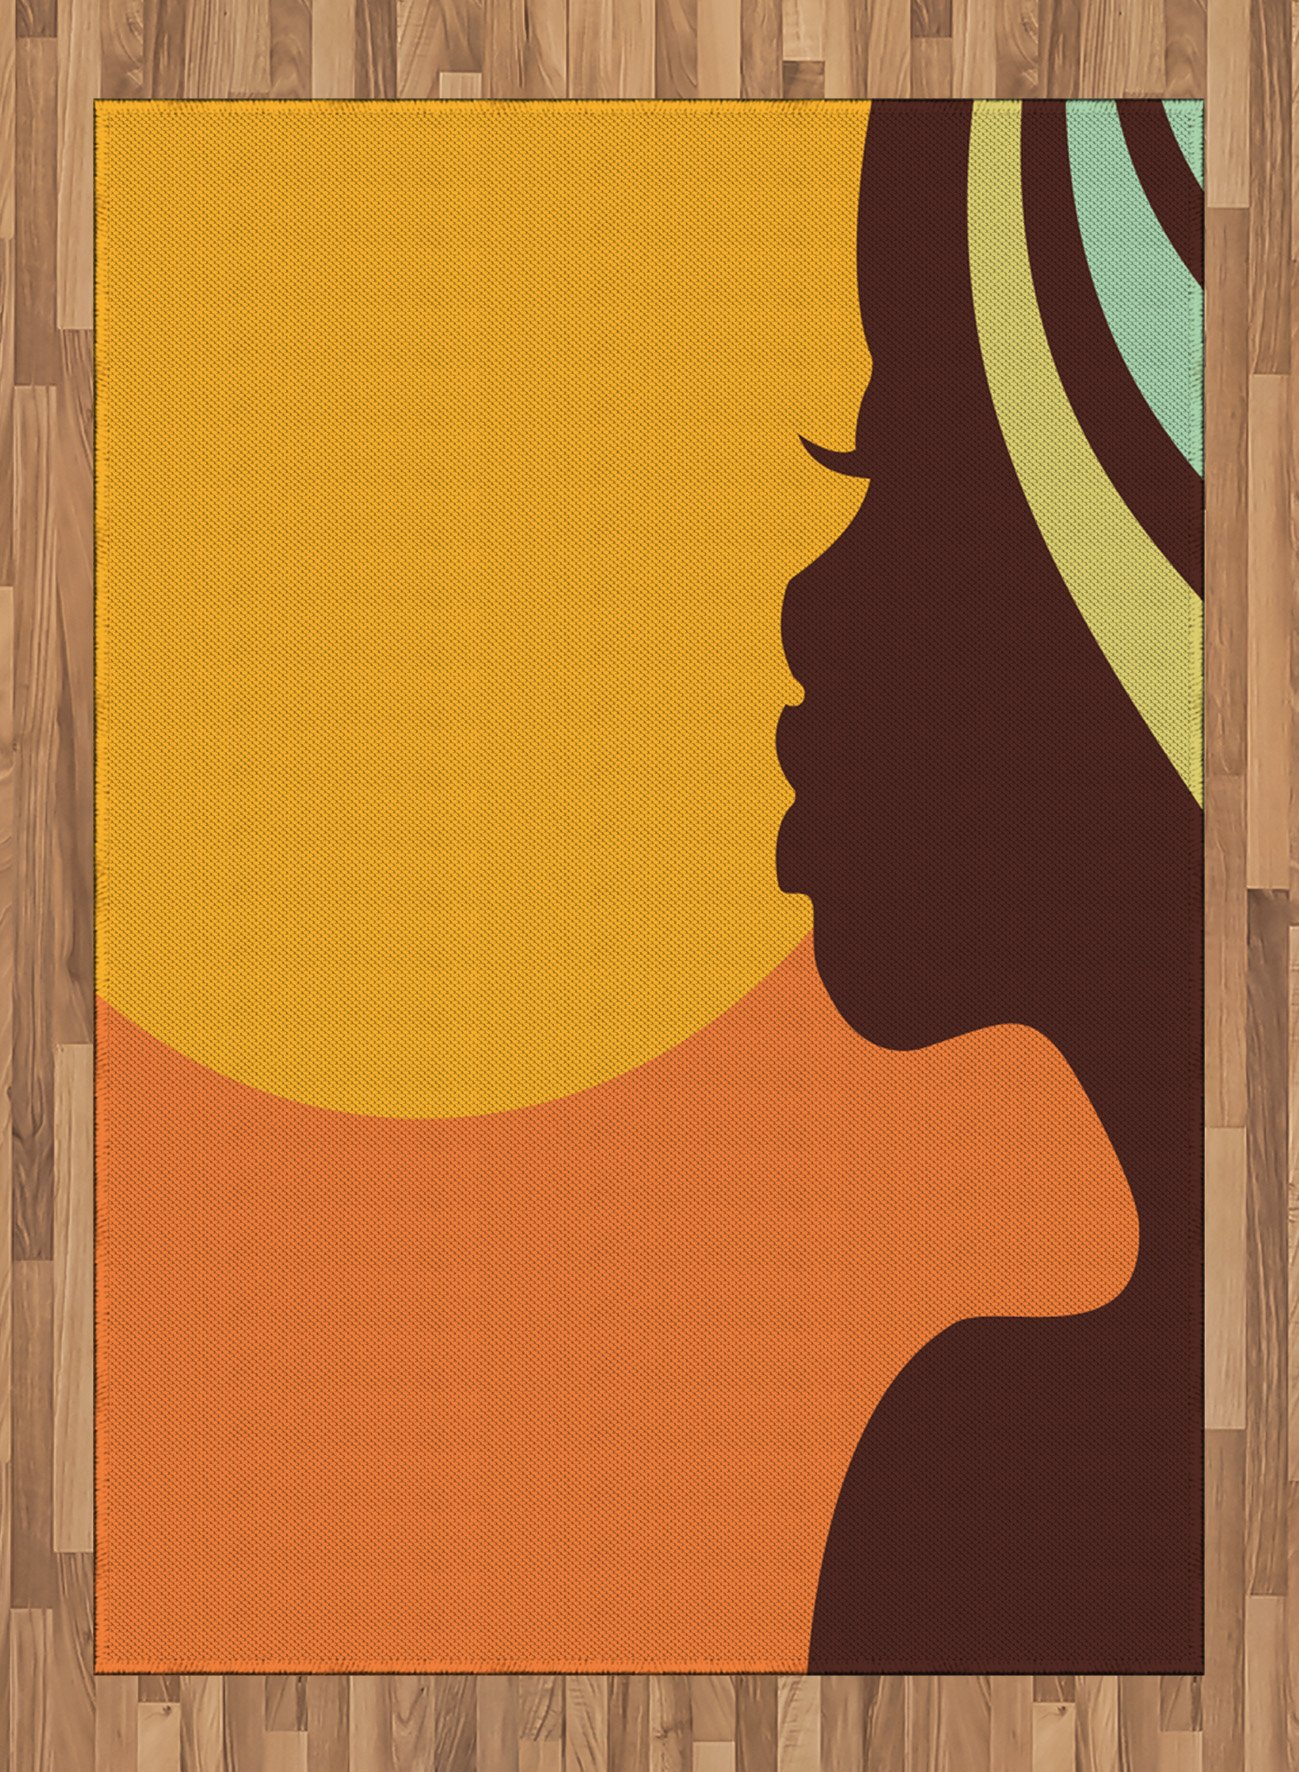 African Woman Area Rug by Ambesonne, Teenage Girl Pretty Face Profile Abstract Sunset Calm Evening, Flat Woven Accent Rug for Living Room Bedroom Dining Room, 5.2 x 7.5 FT, Orange Salmon Dark Brown